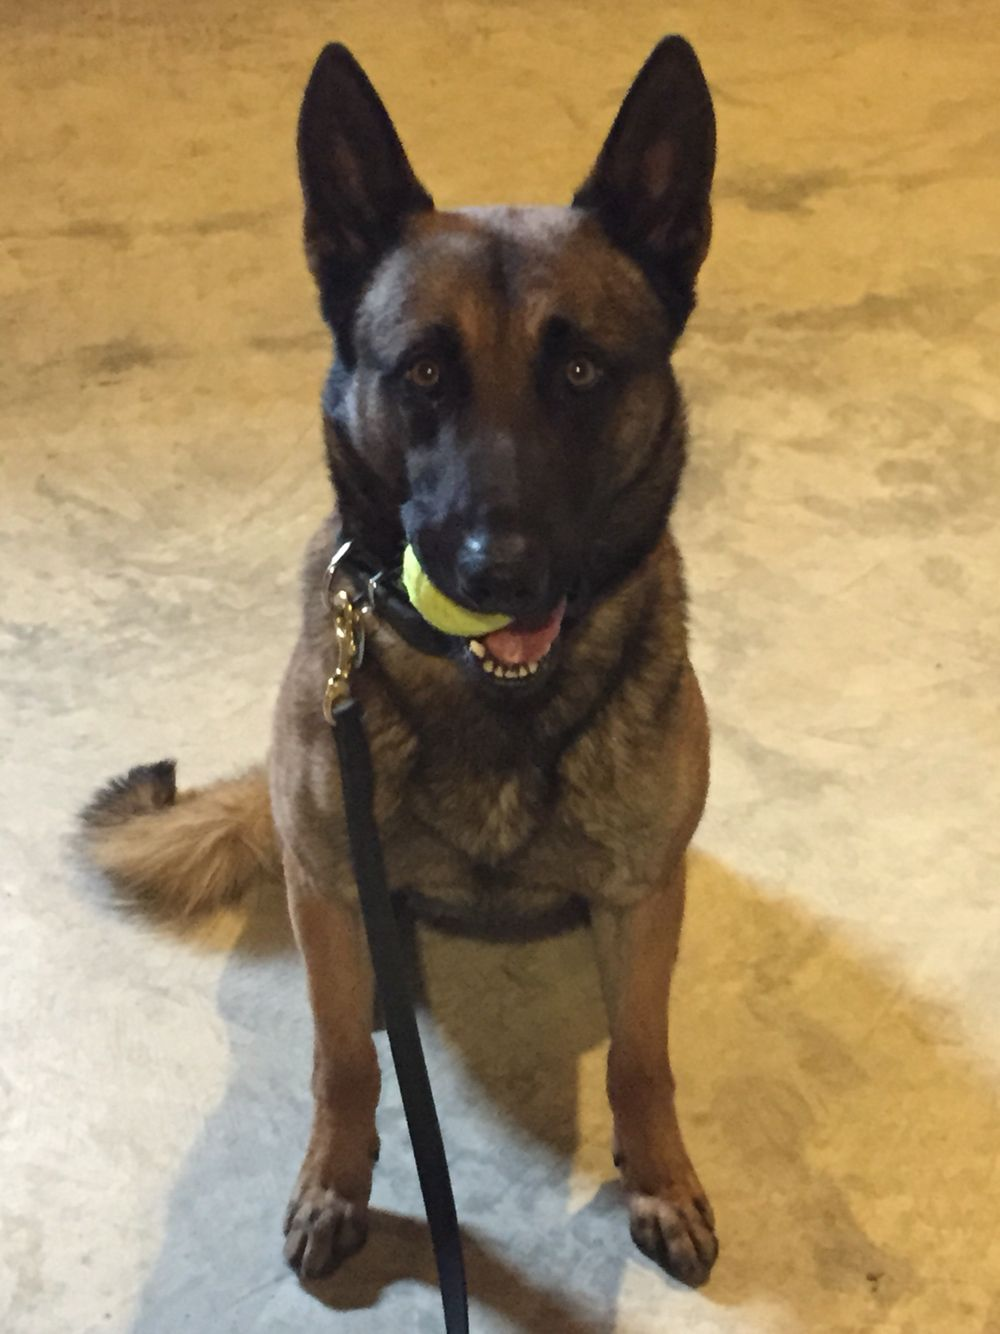 Malinois Male Titled Knpv Ph1 Social Friendly Dog Will Be A Fantastic Addition To Any Home Malinois Dog Friends Guard Dogs For Sale